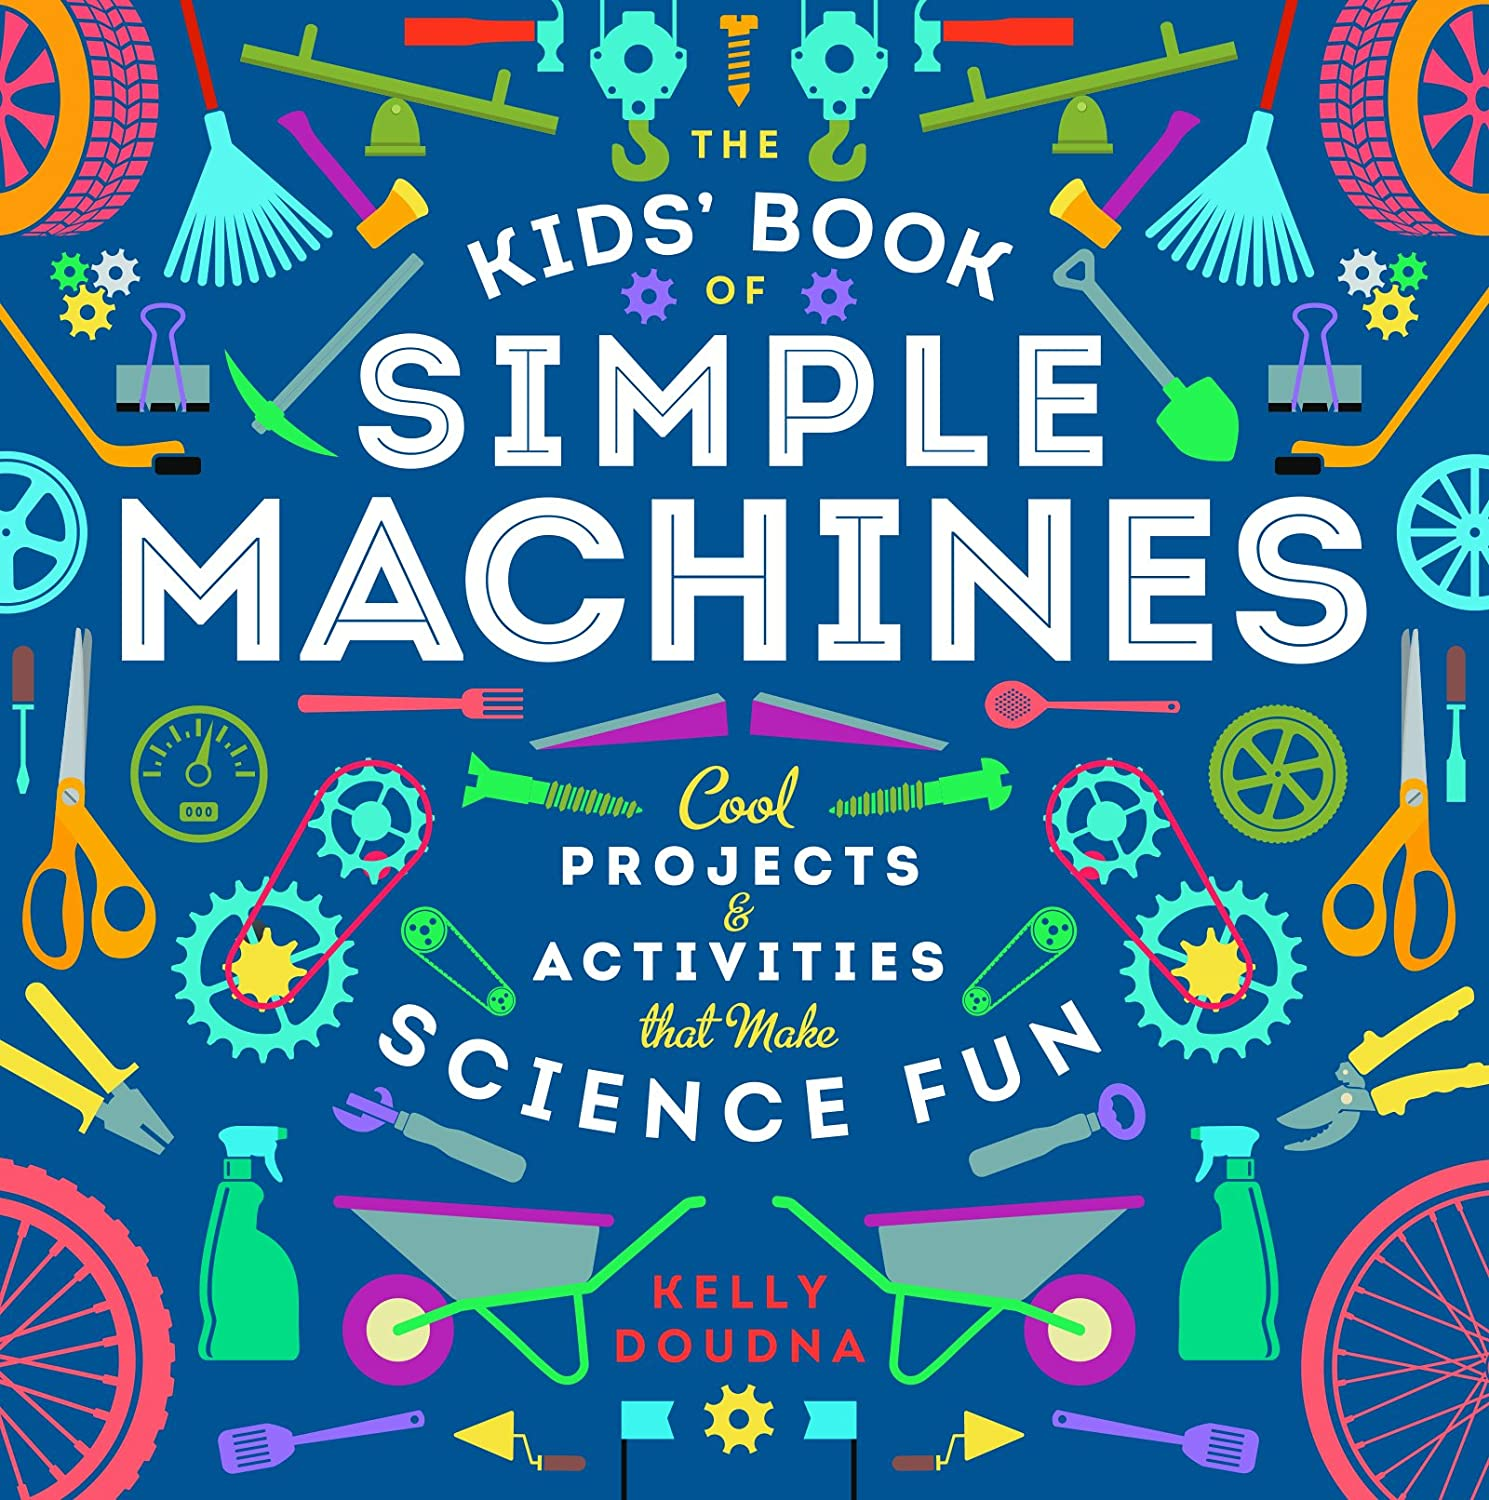 Simple machines clip art - This set includes colored and line art graphics  for: lever (1st, 2nd and…   Simple machines, Elementary stem activities,  Science clipart